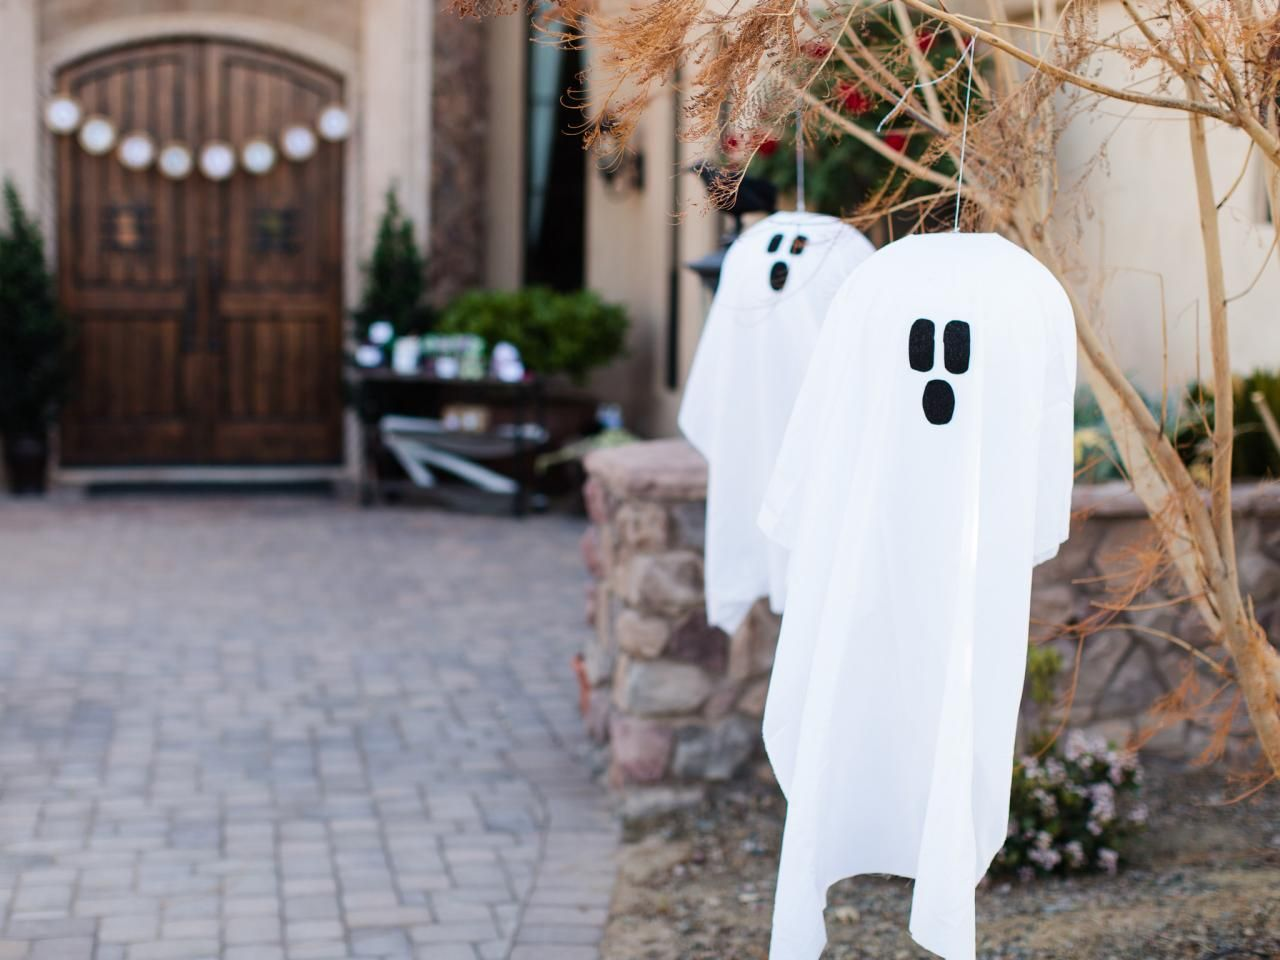 Outdoor hanging little ghost - Scary Halloween Decorations That'll Give You The Jitters